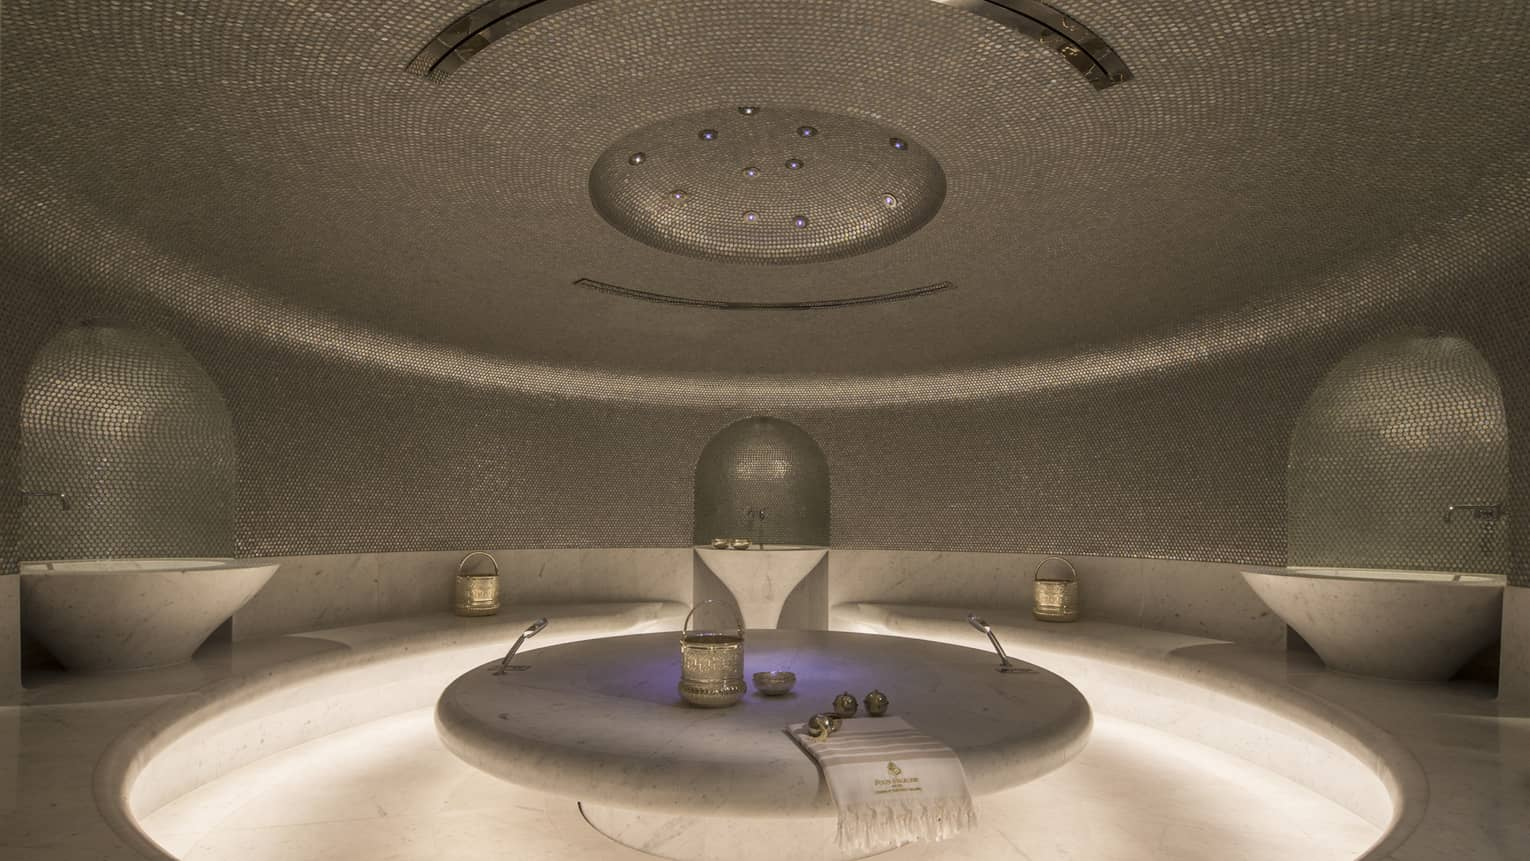 Hammam treatment room